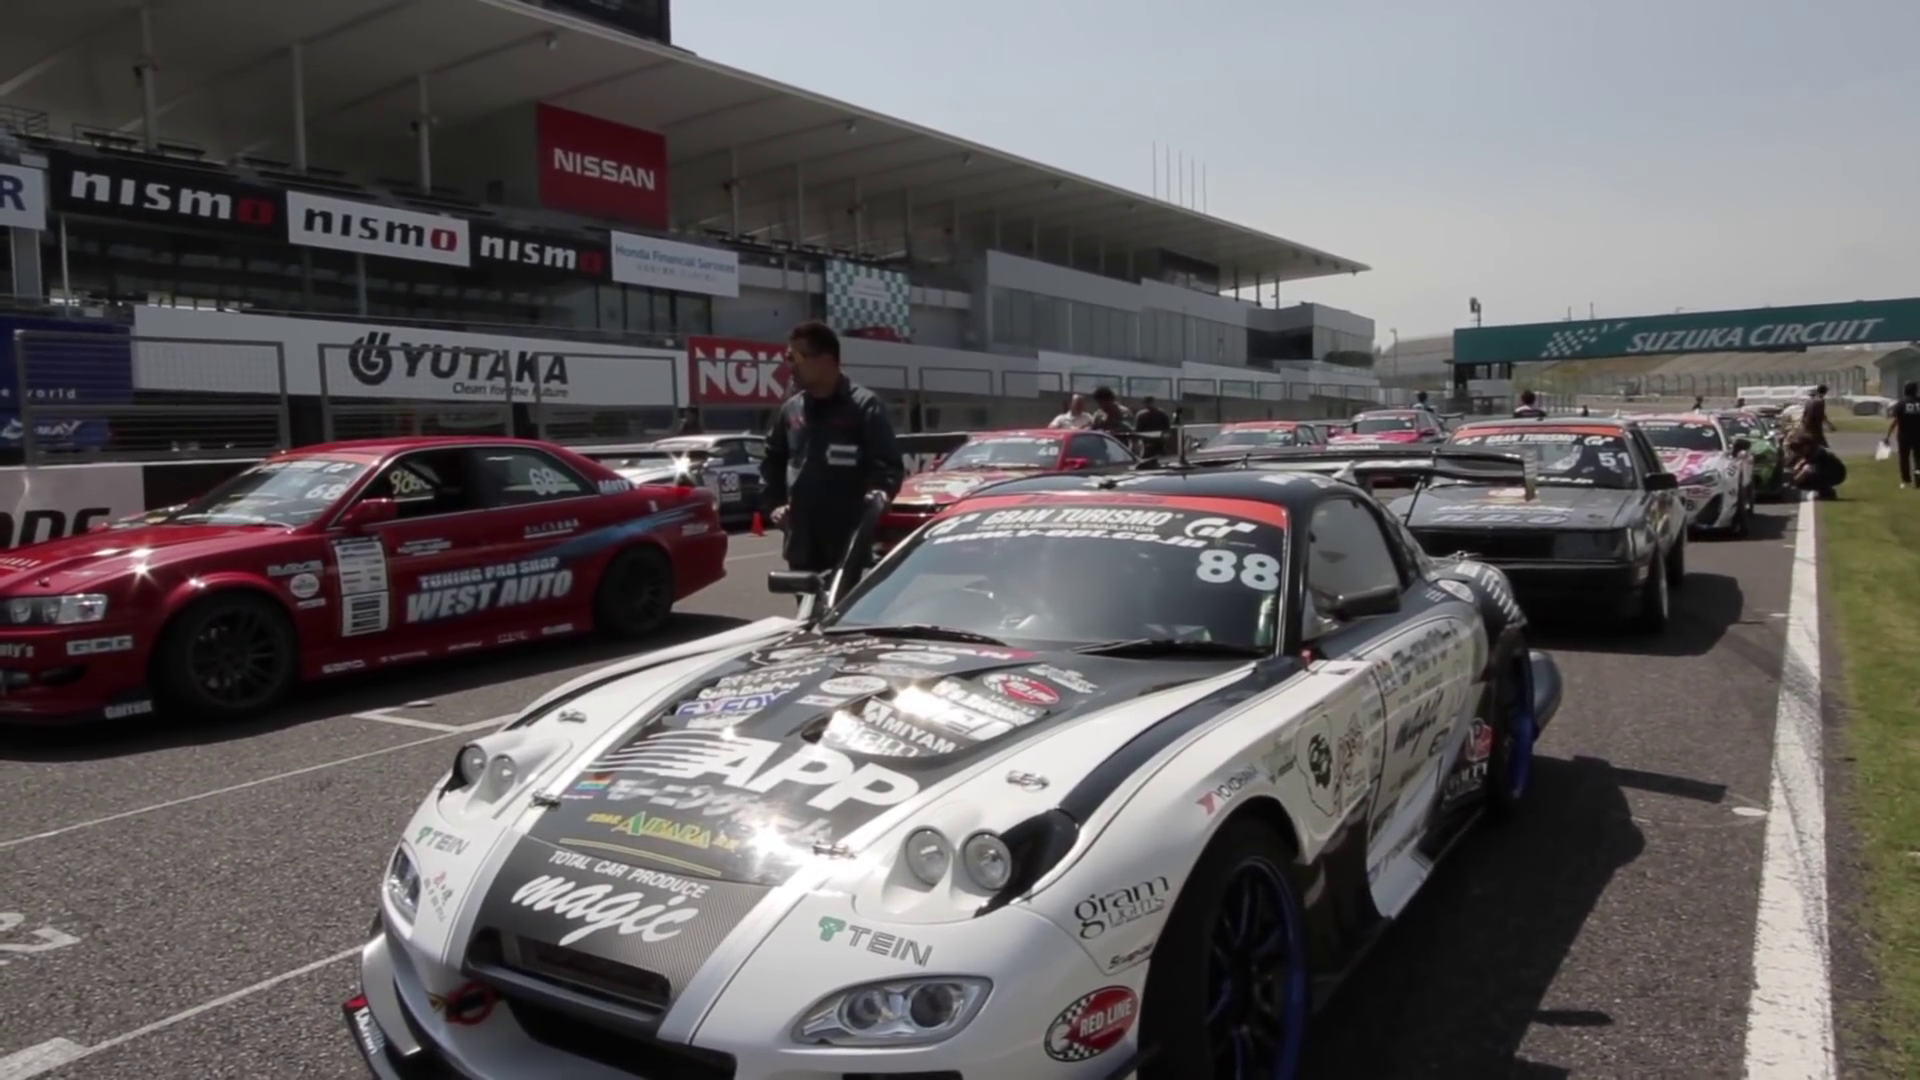 The D1 Grand Prix is a production car drifting series from Japan.